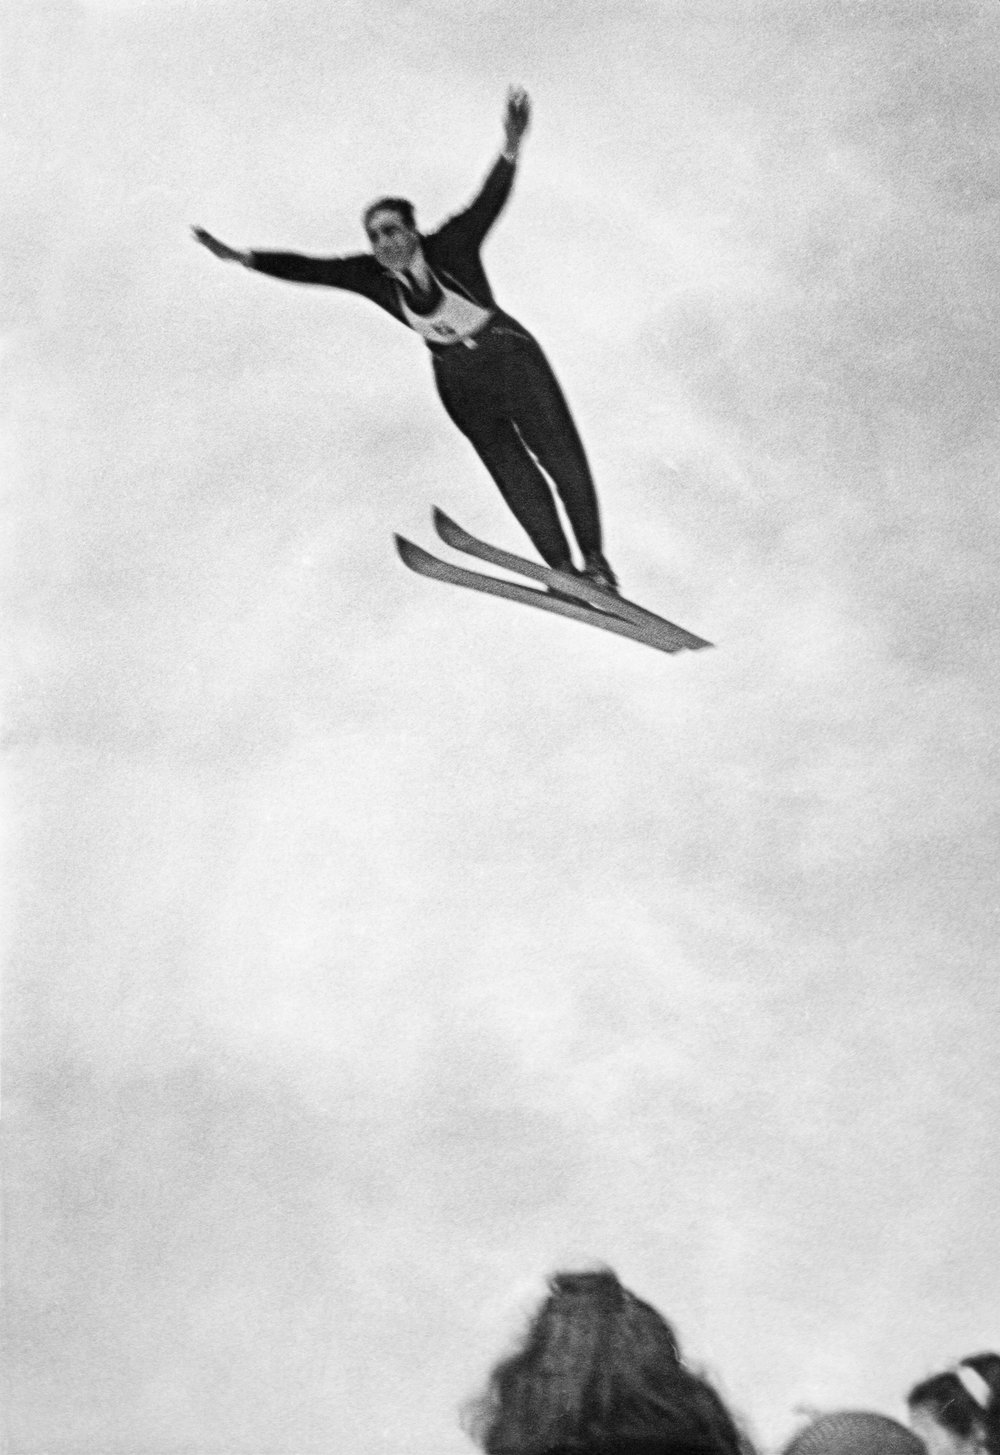 Samuel & Martha Pletsch's son, ski jumper Earle Pletsch, 1947.